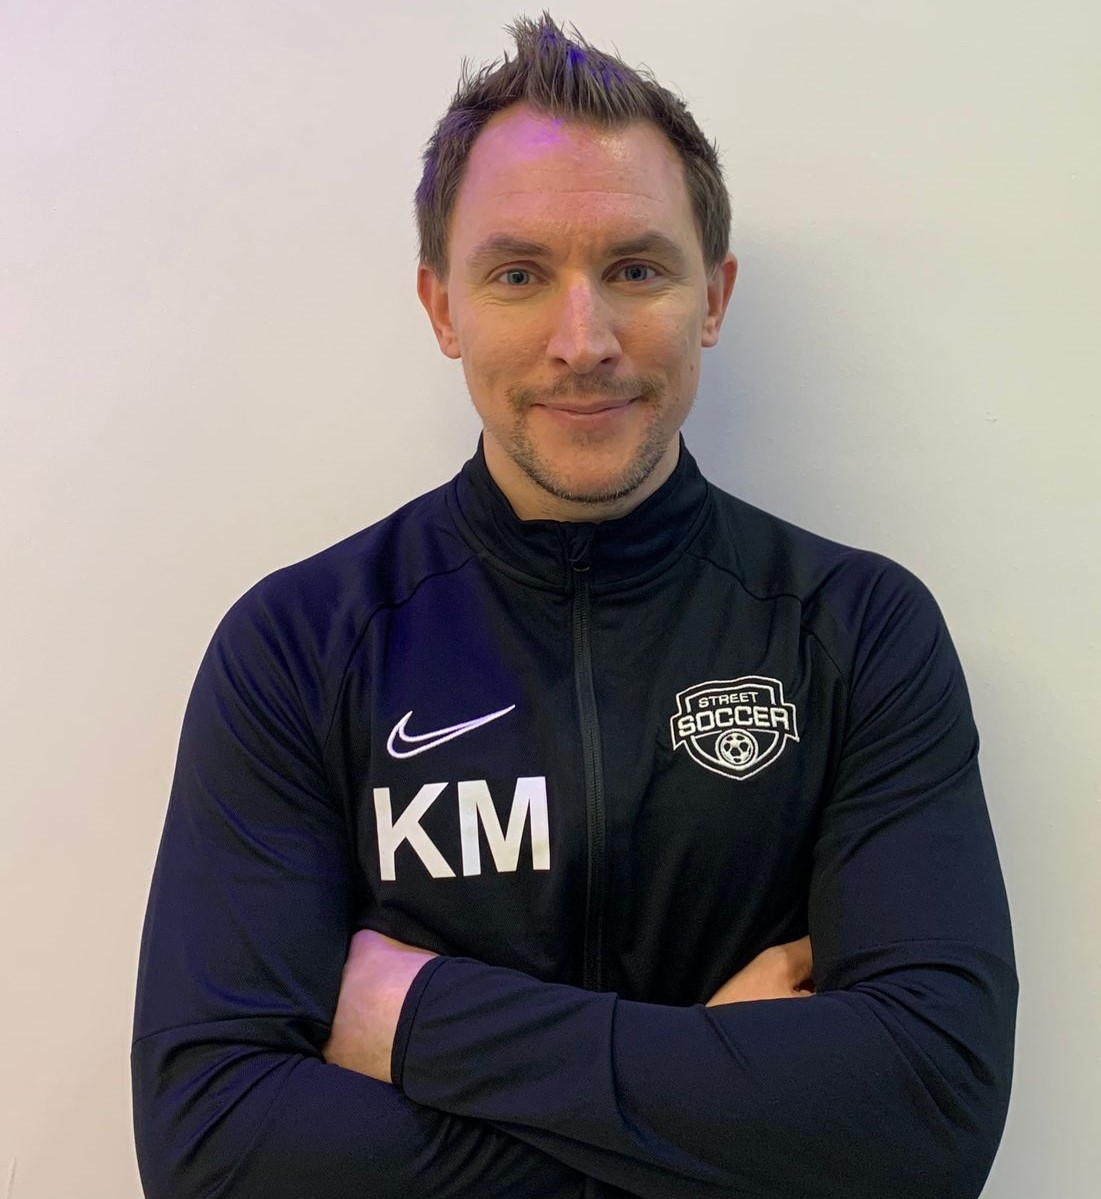 Keith Mabbutt Street Soccer Foundation CEO